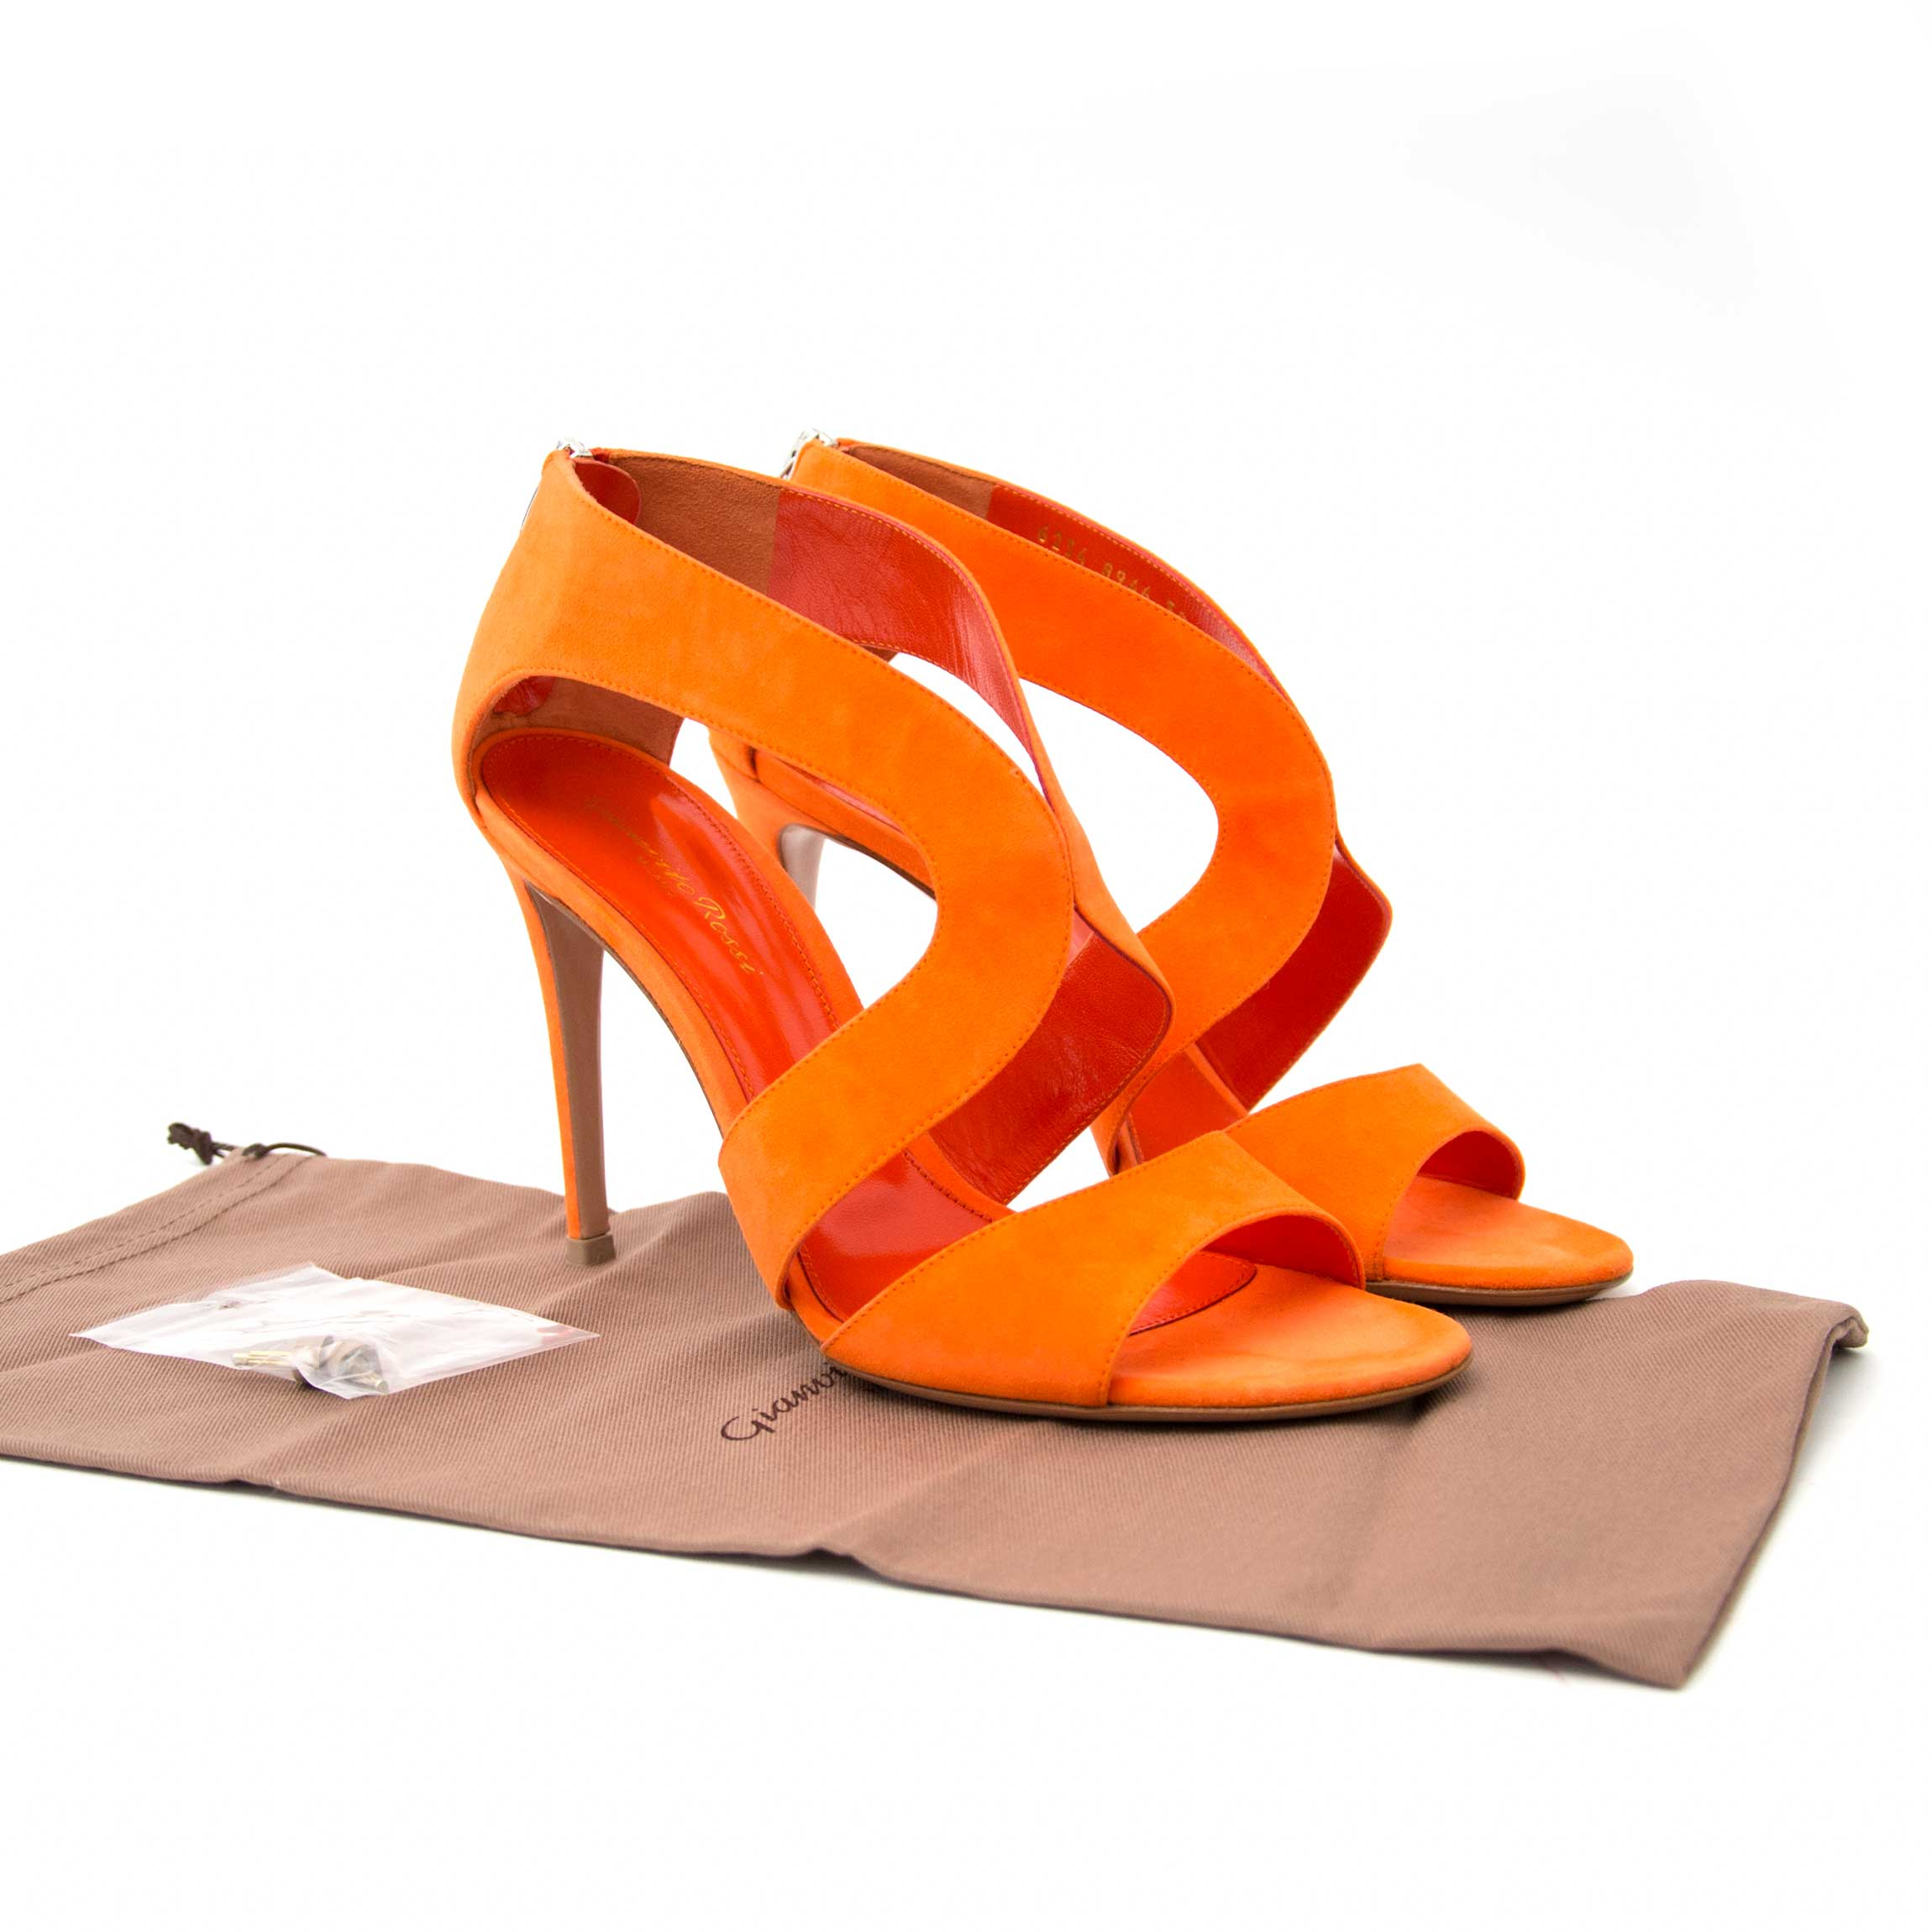 Up to 70% discount on brand new designer shoes at Labellov secondhand luxury